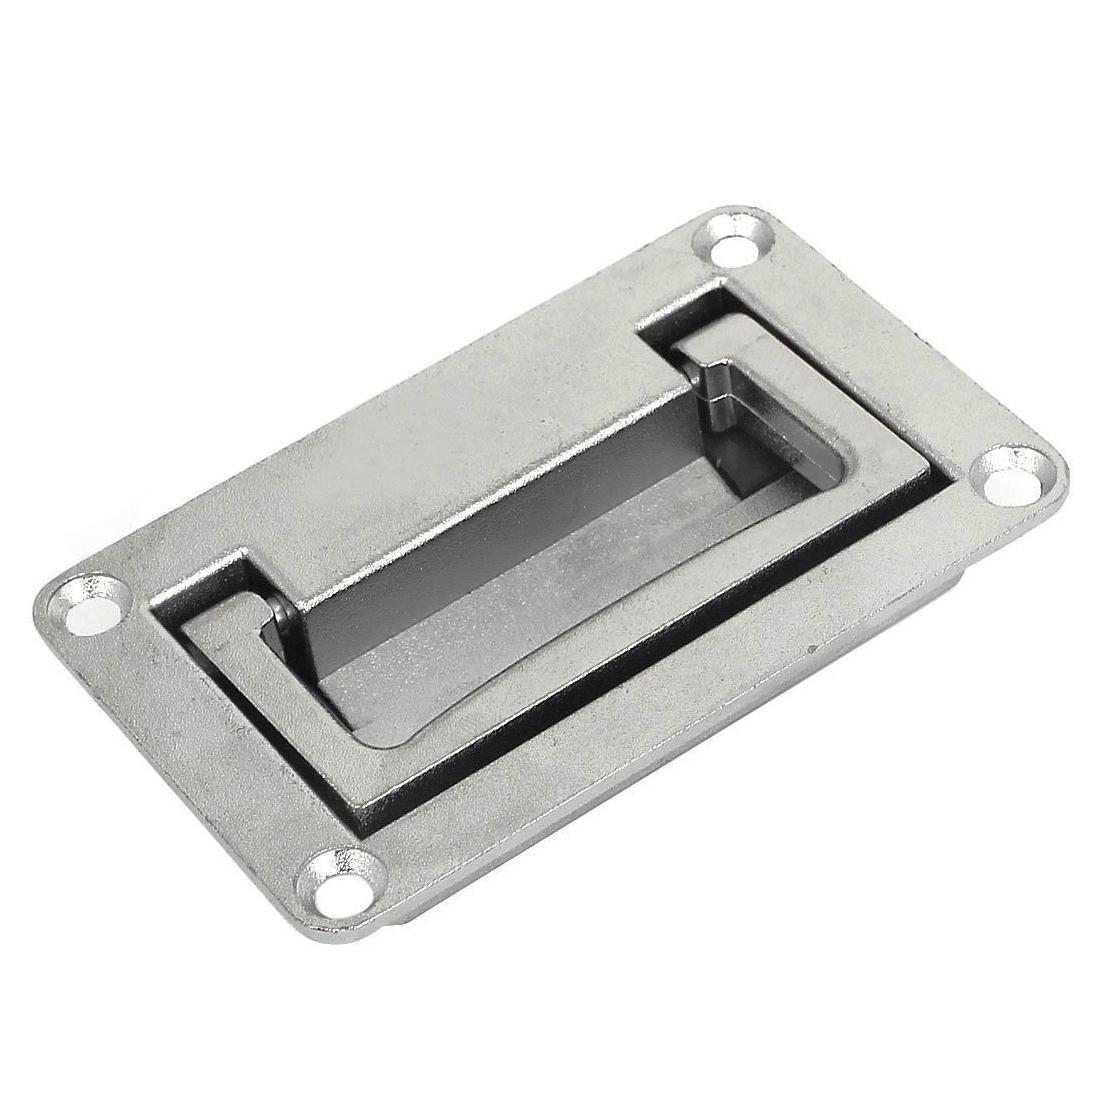 LHLL-9.5cm x 6cm Metal Rectangle Shaped Recessed Folding Pull Handle Grip